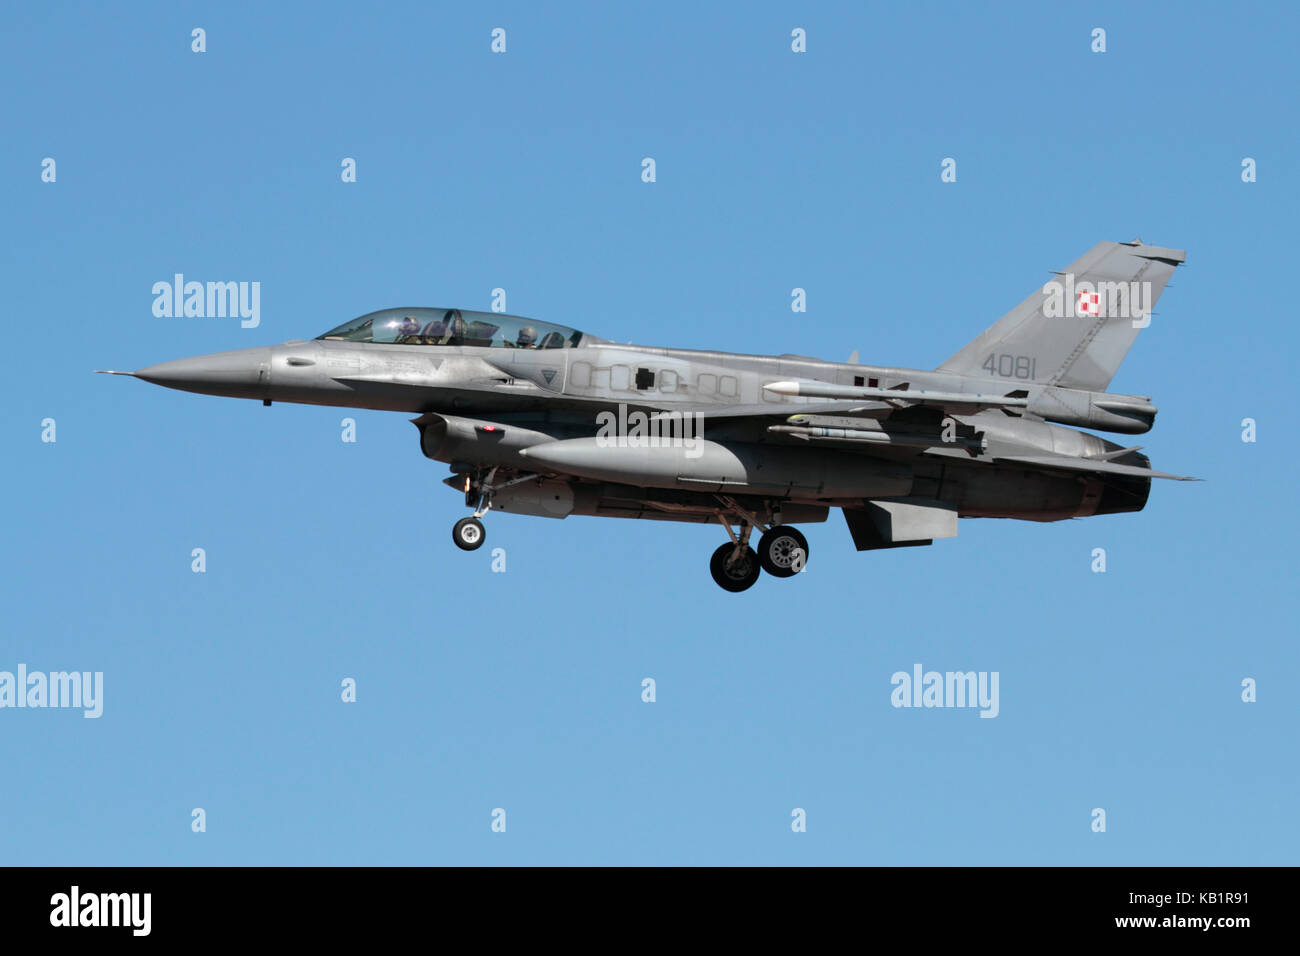 Military aviation. Polish Air Force F-16D jet fighter aircraft on approach Stock Photo